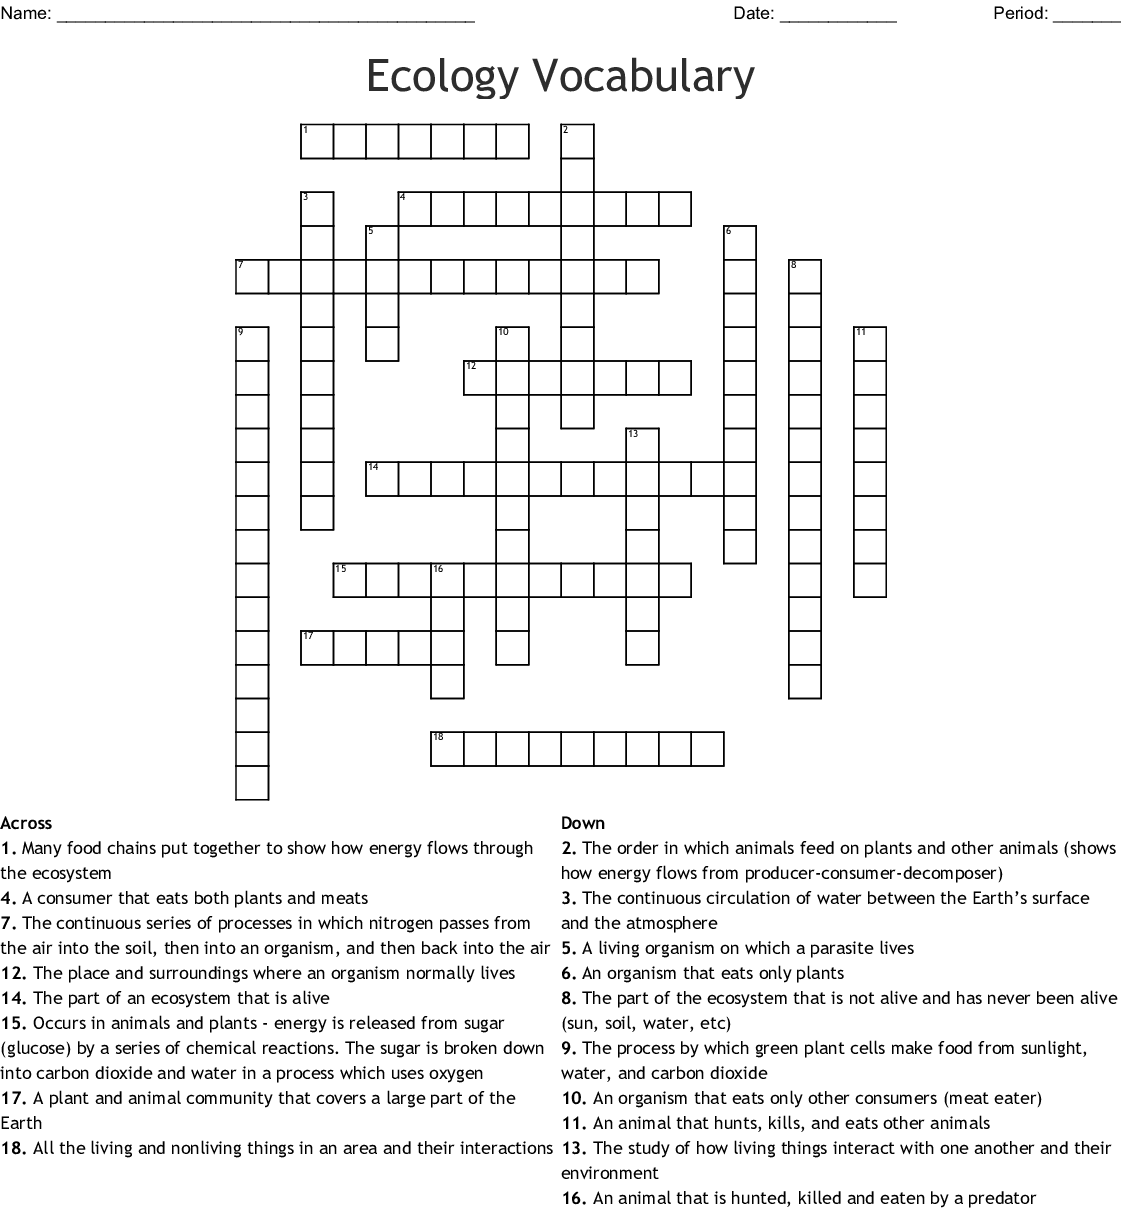 Ecology Vocabulary Crossword Puzzle Answer Key